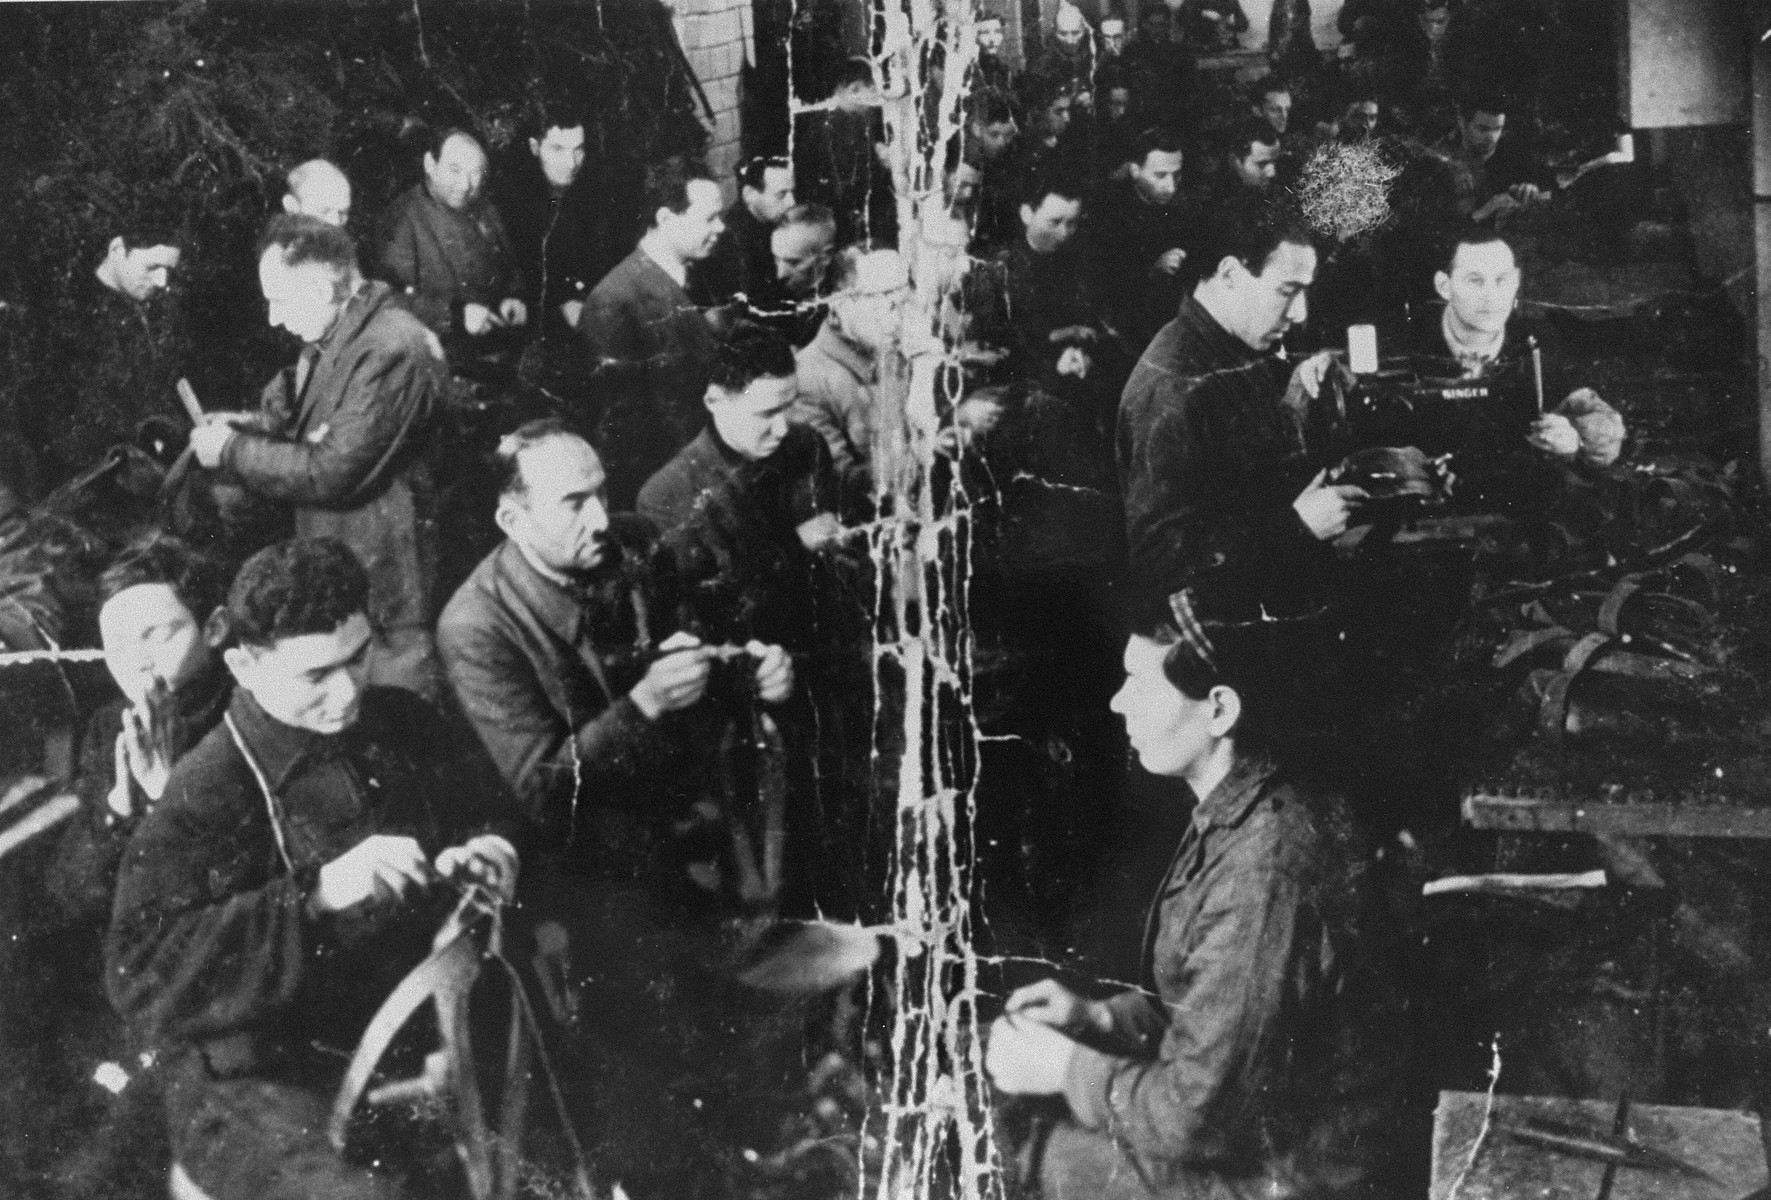 View of Jews at work in the saddle making workshop in the Kovno ghetto.    Pictured in the center to the left of the crease are Spitulnik and Baruch Grodnik. This photo was kept folded in the pocket of partisan Baruch Gofer while he was living in the forests.